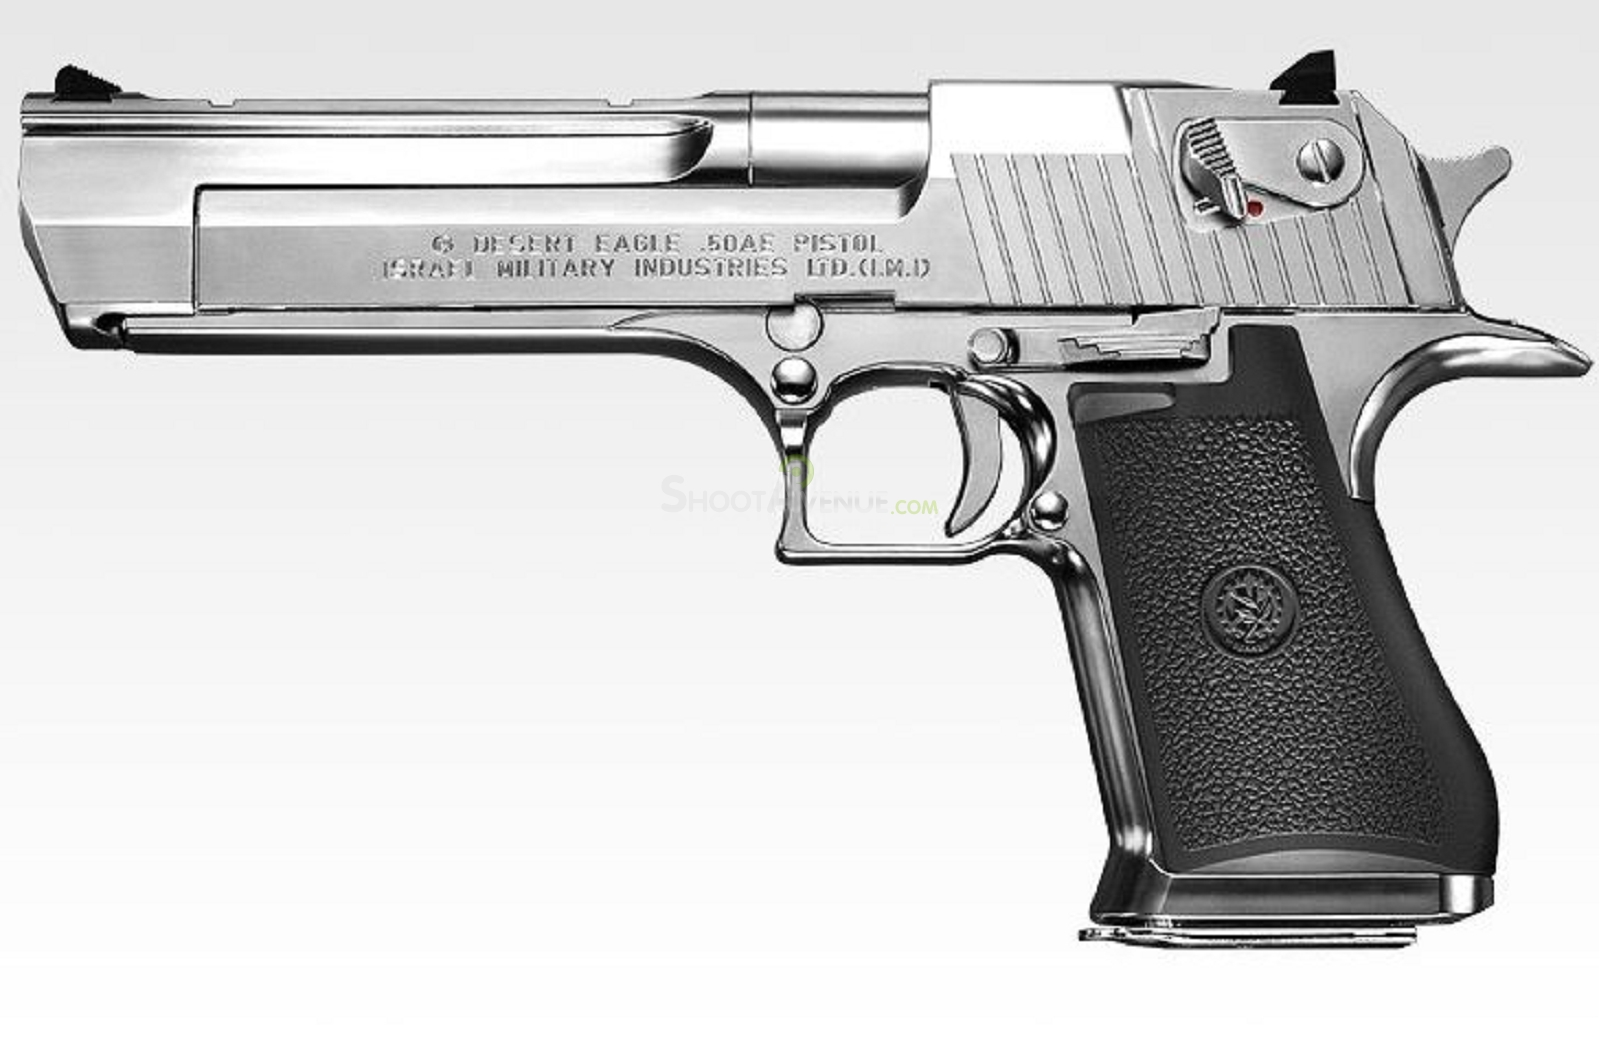 pistolet marui desert eagle 50 ae chrome gbb airsoft shootavenue. Black Bedroom Furniture Sets. Home Design Ideas